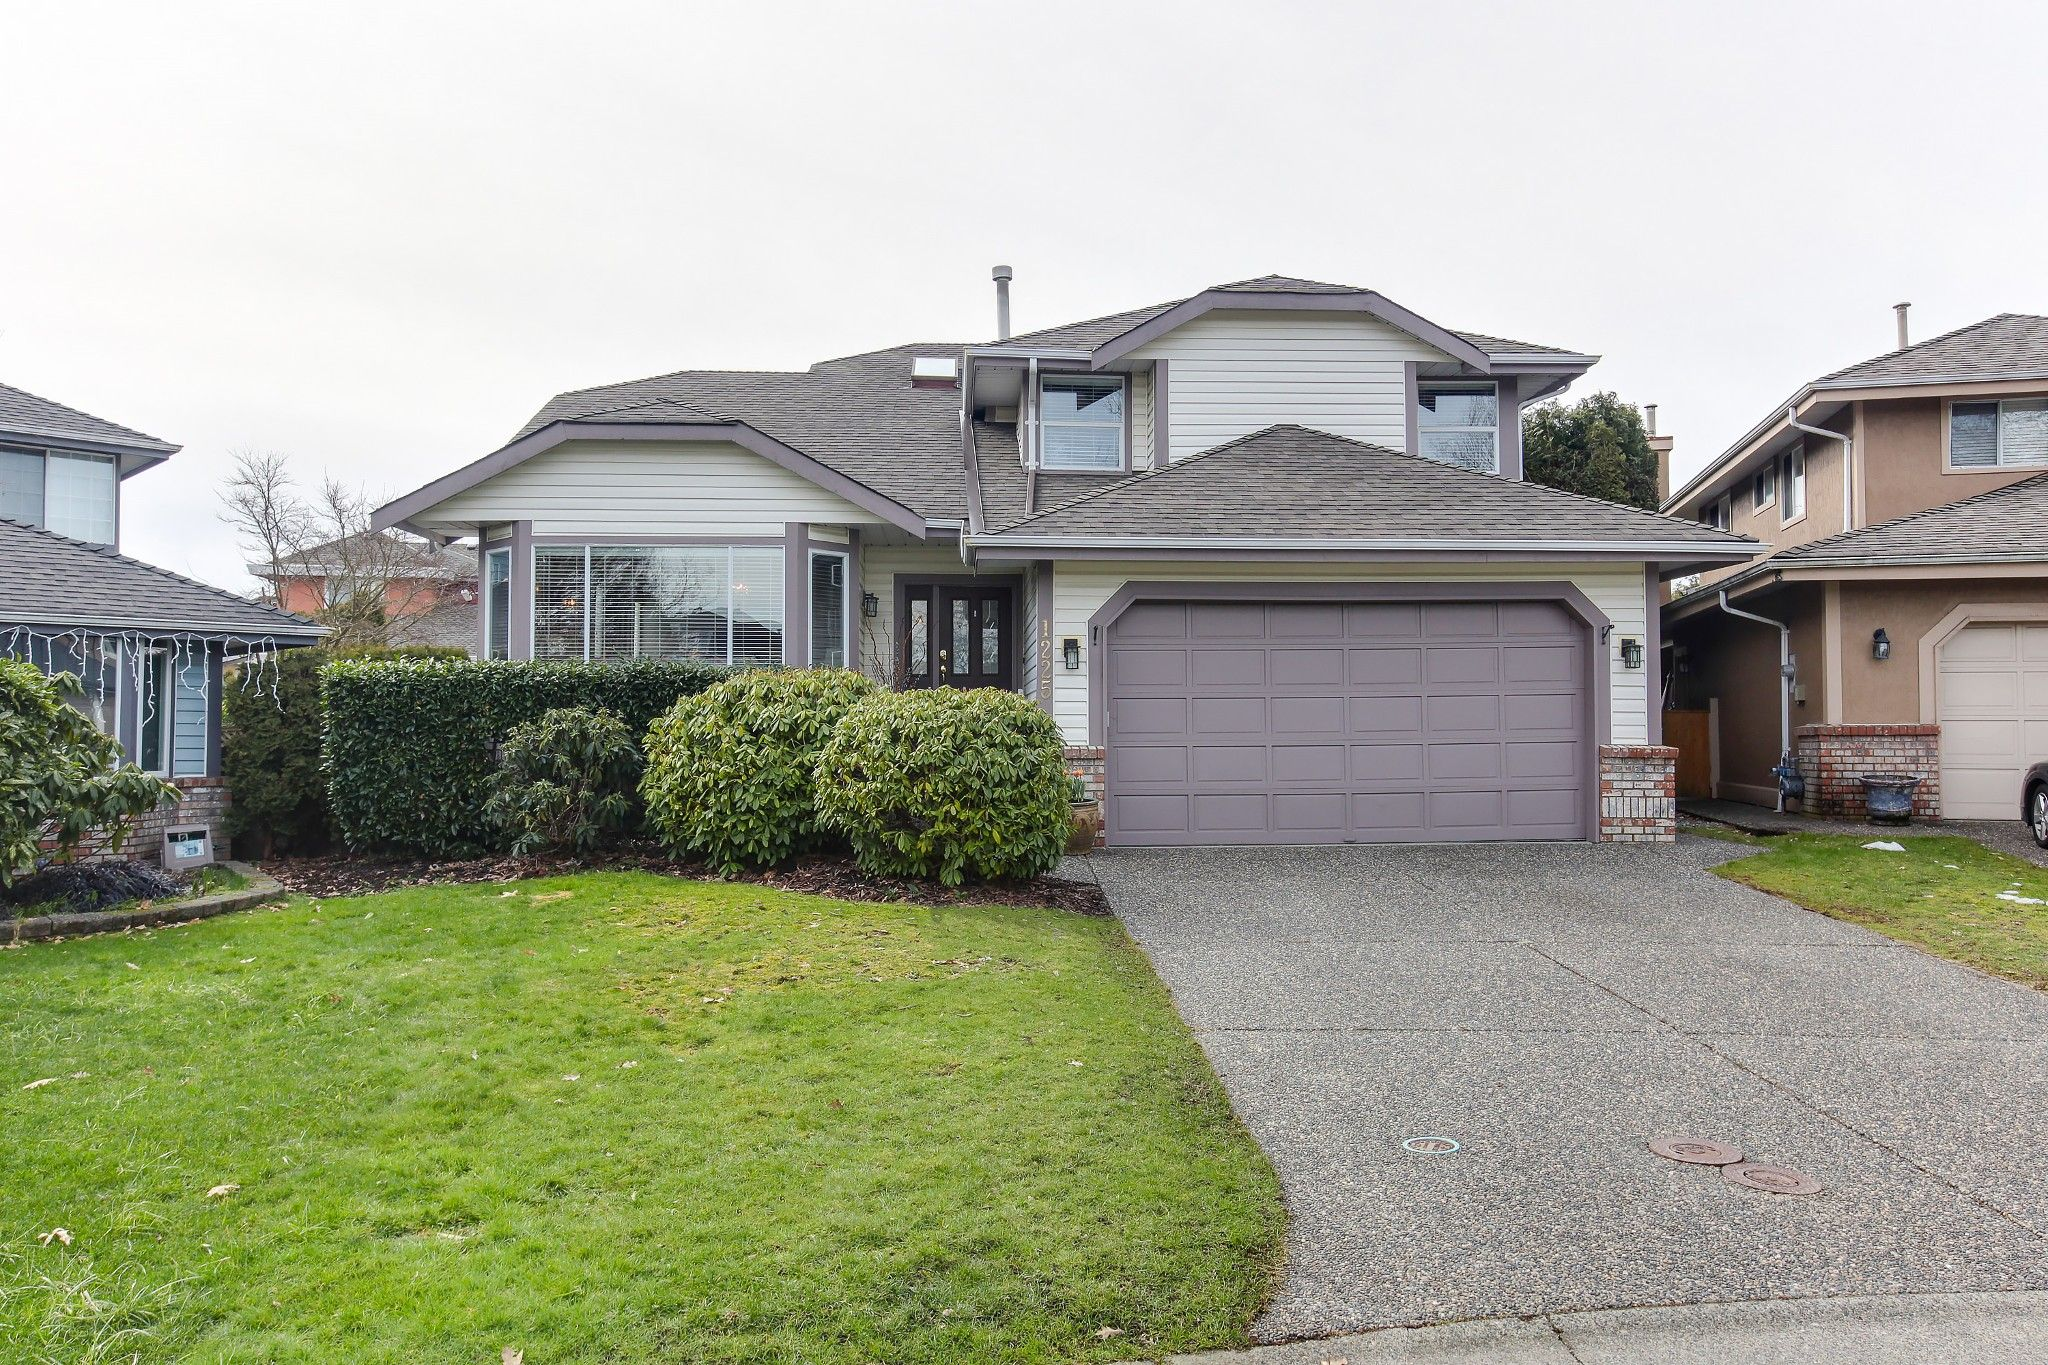 Main Photo: 1225 ROYAL Court in Port Coquitlam: Citadel PQ House for sale : MLS®# R2245481